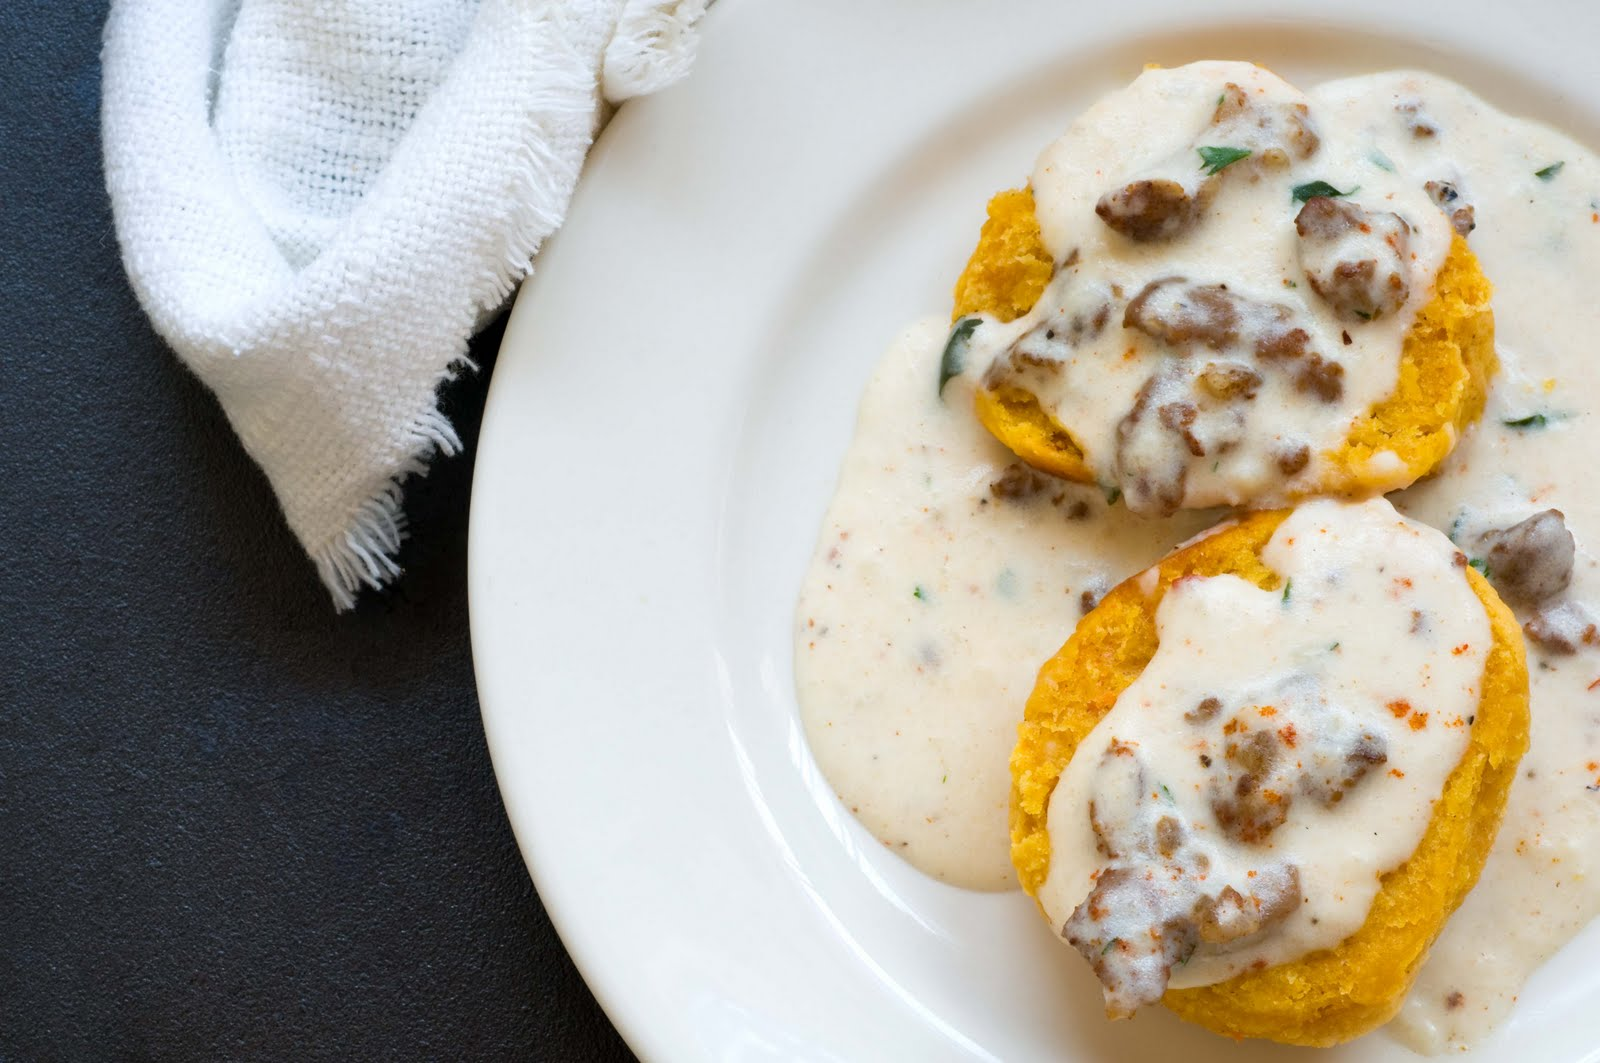 Please enjoy these sweet potato biscuits and the chorizo gravy. And ...